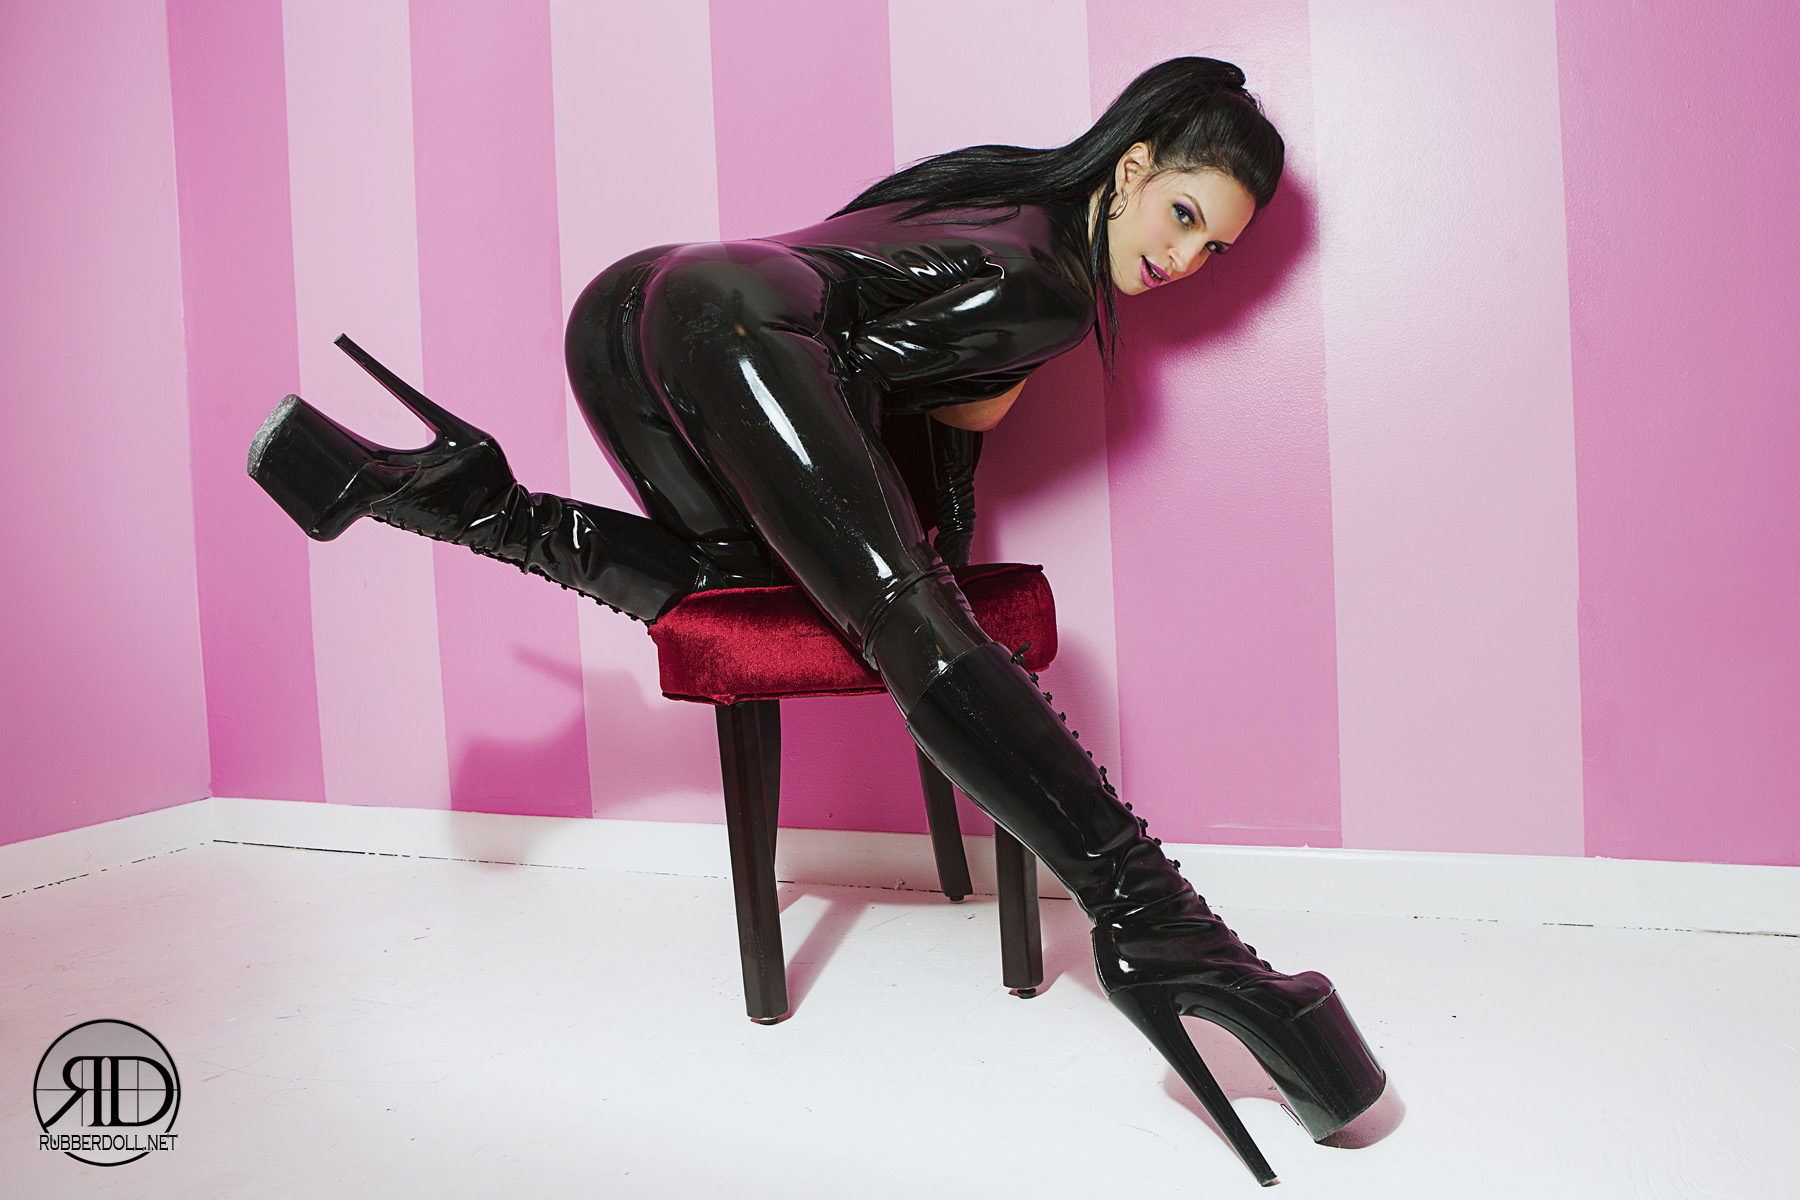 http://rubberdoll.net/images/newsletter7.jpg